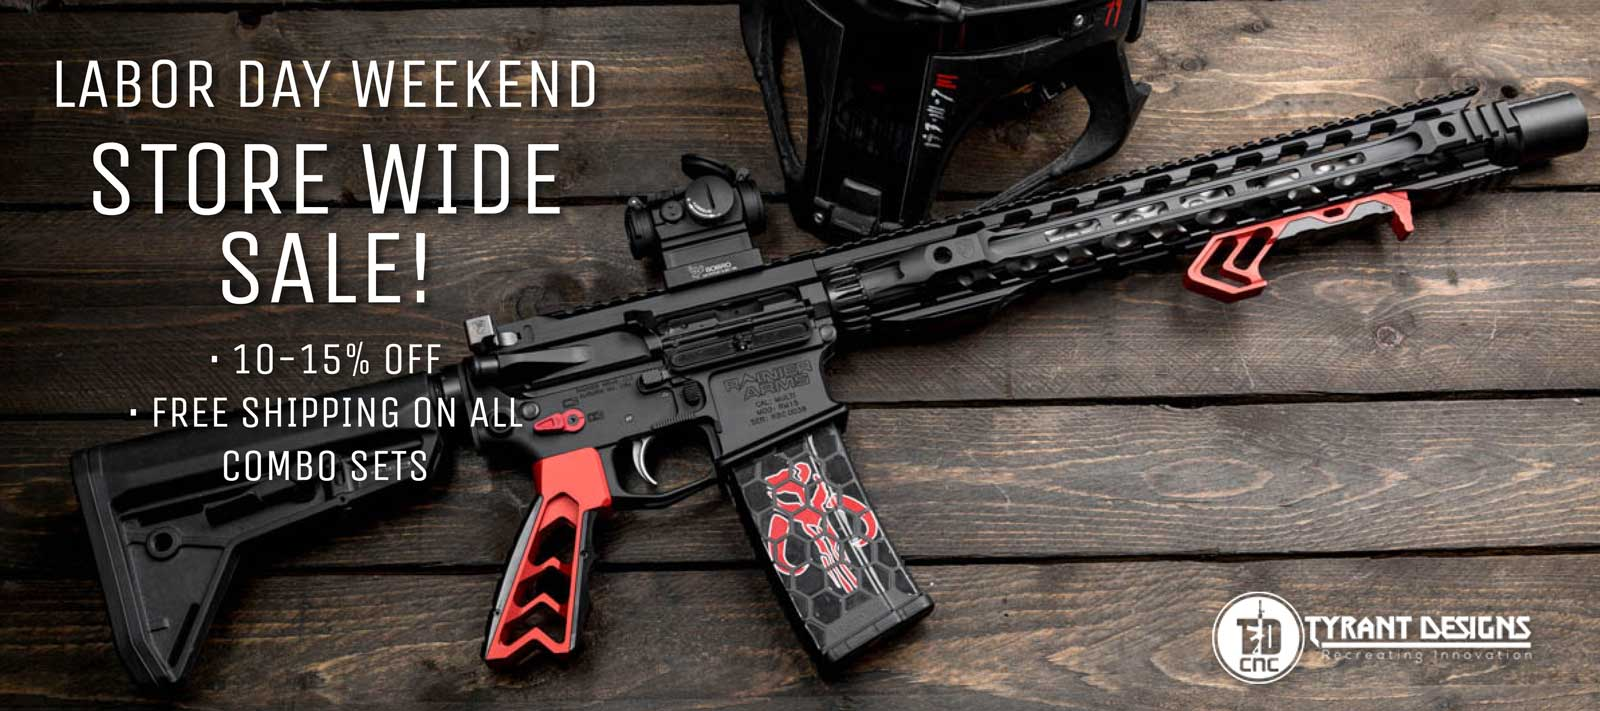 Tyrant Designs Labor Day Sale - AR-15 Grips and AR-15 Foregrips